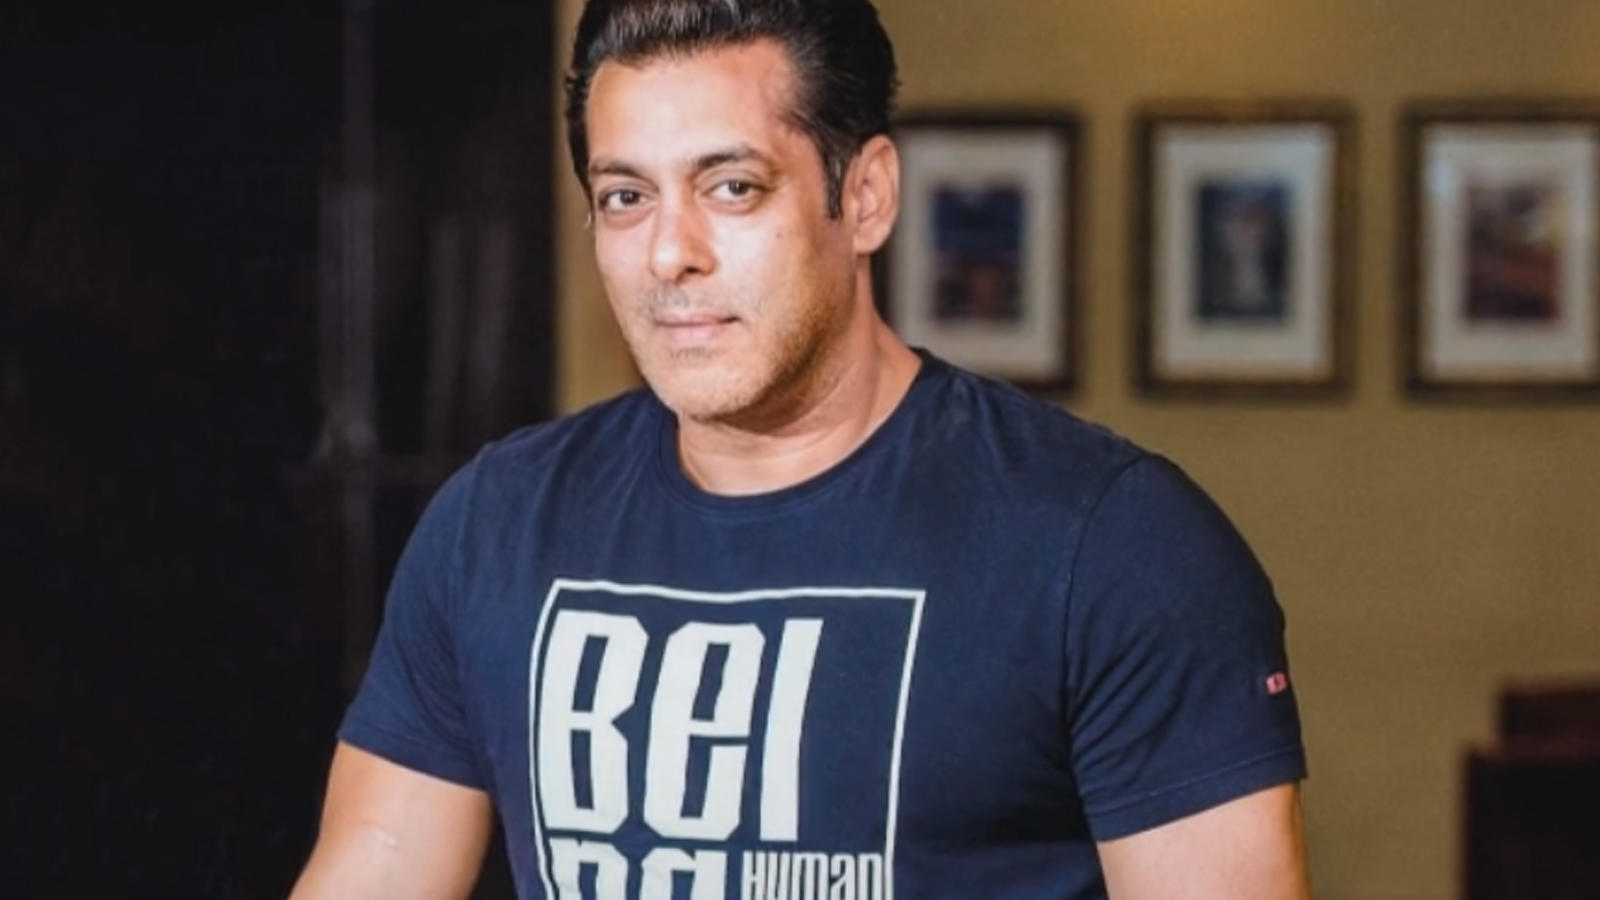 Salman Khan opens up on marriage